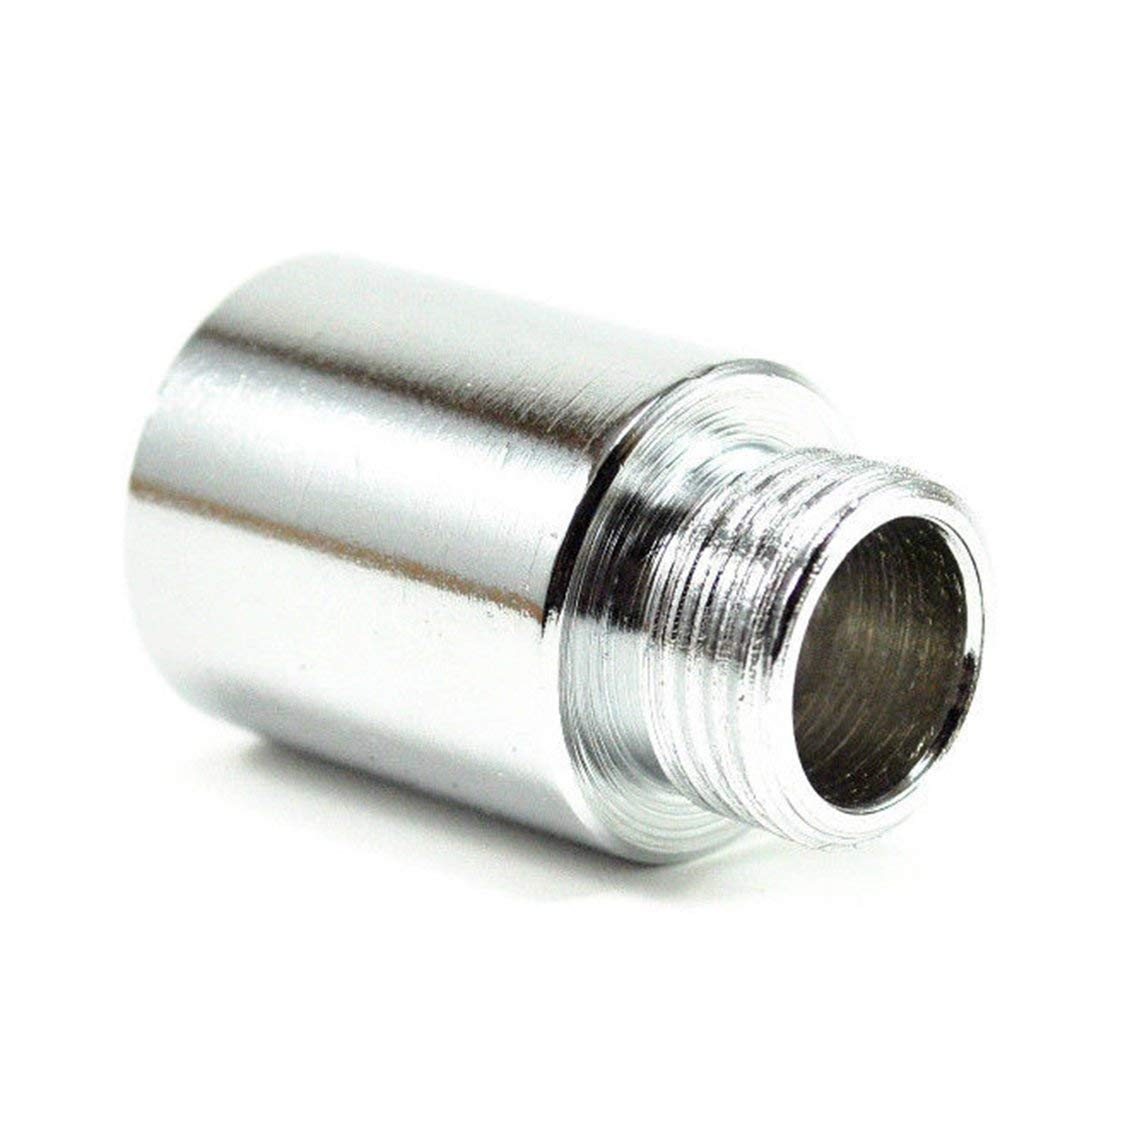 Mazur 1Pc O2 Sensore di ossigeno Extender Extension Spacer Scarico M18 x1.5 Bung HHO Adapter Straight Bolt-on Easy Installation argento